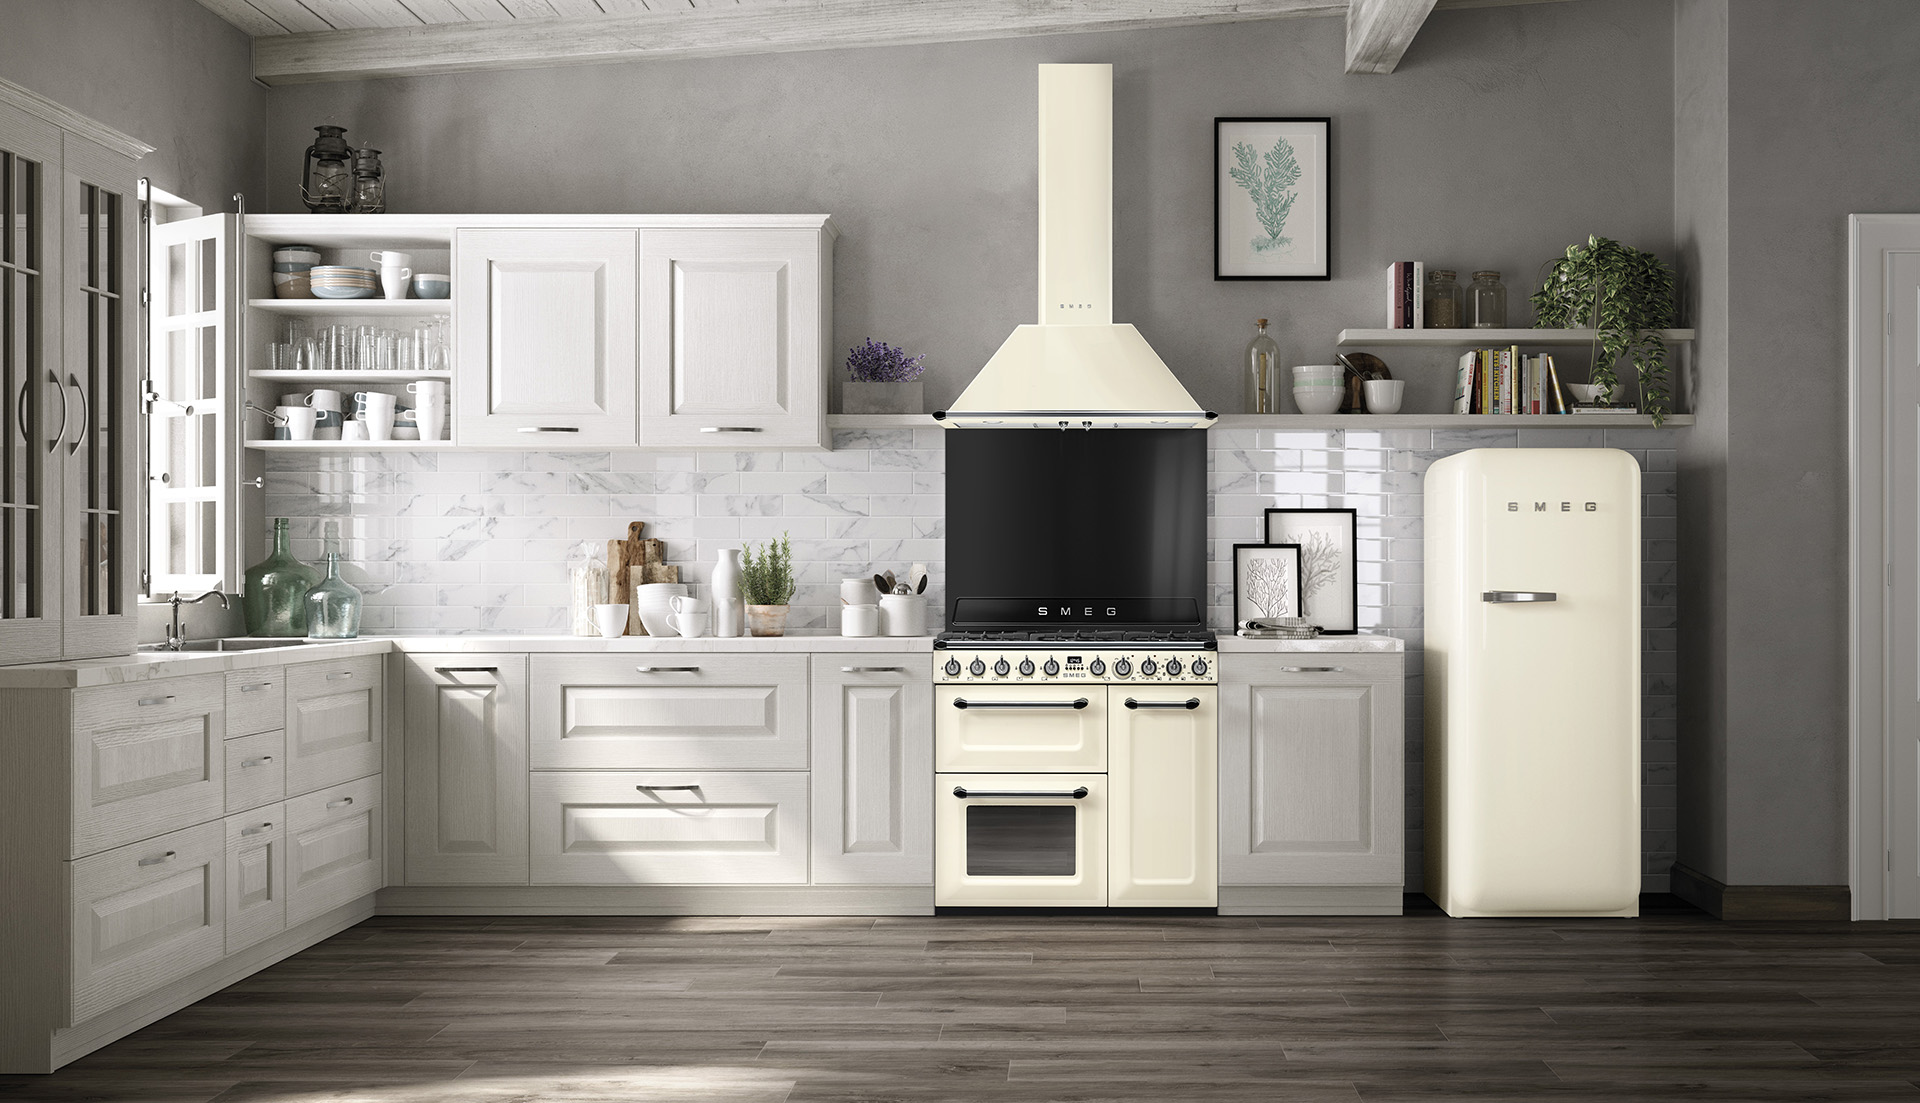 Victoria cream TR93 range cooker and 50's retro style Smeg fridge